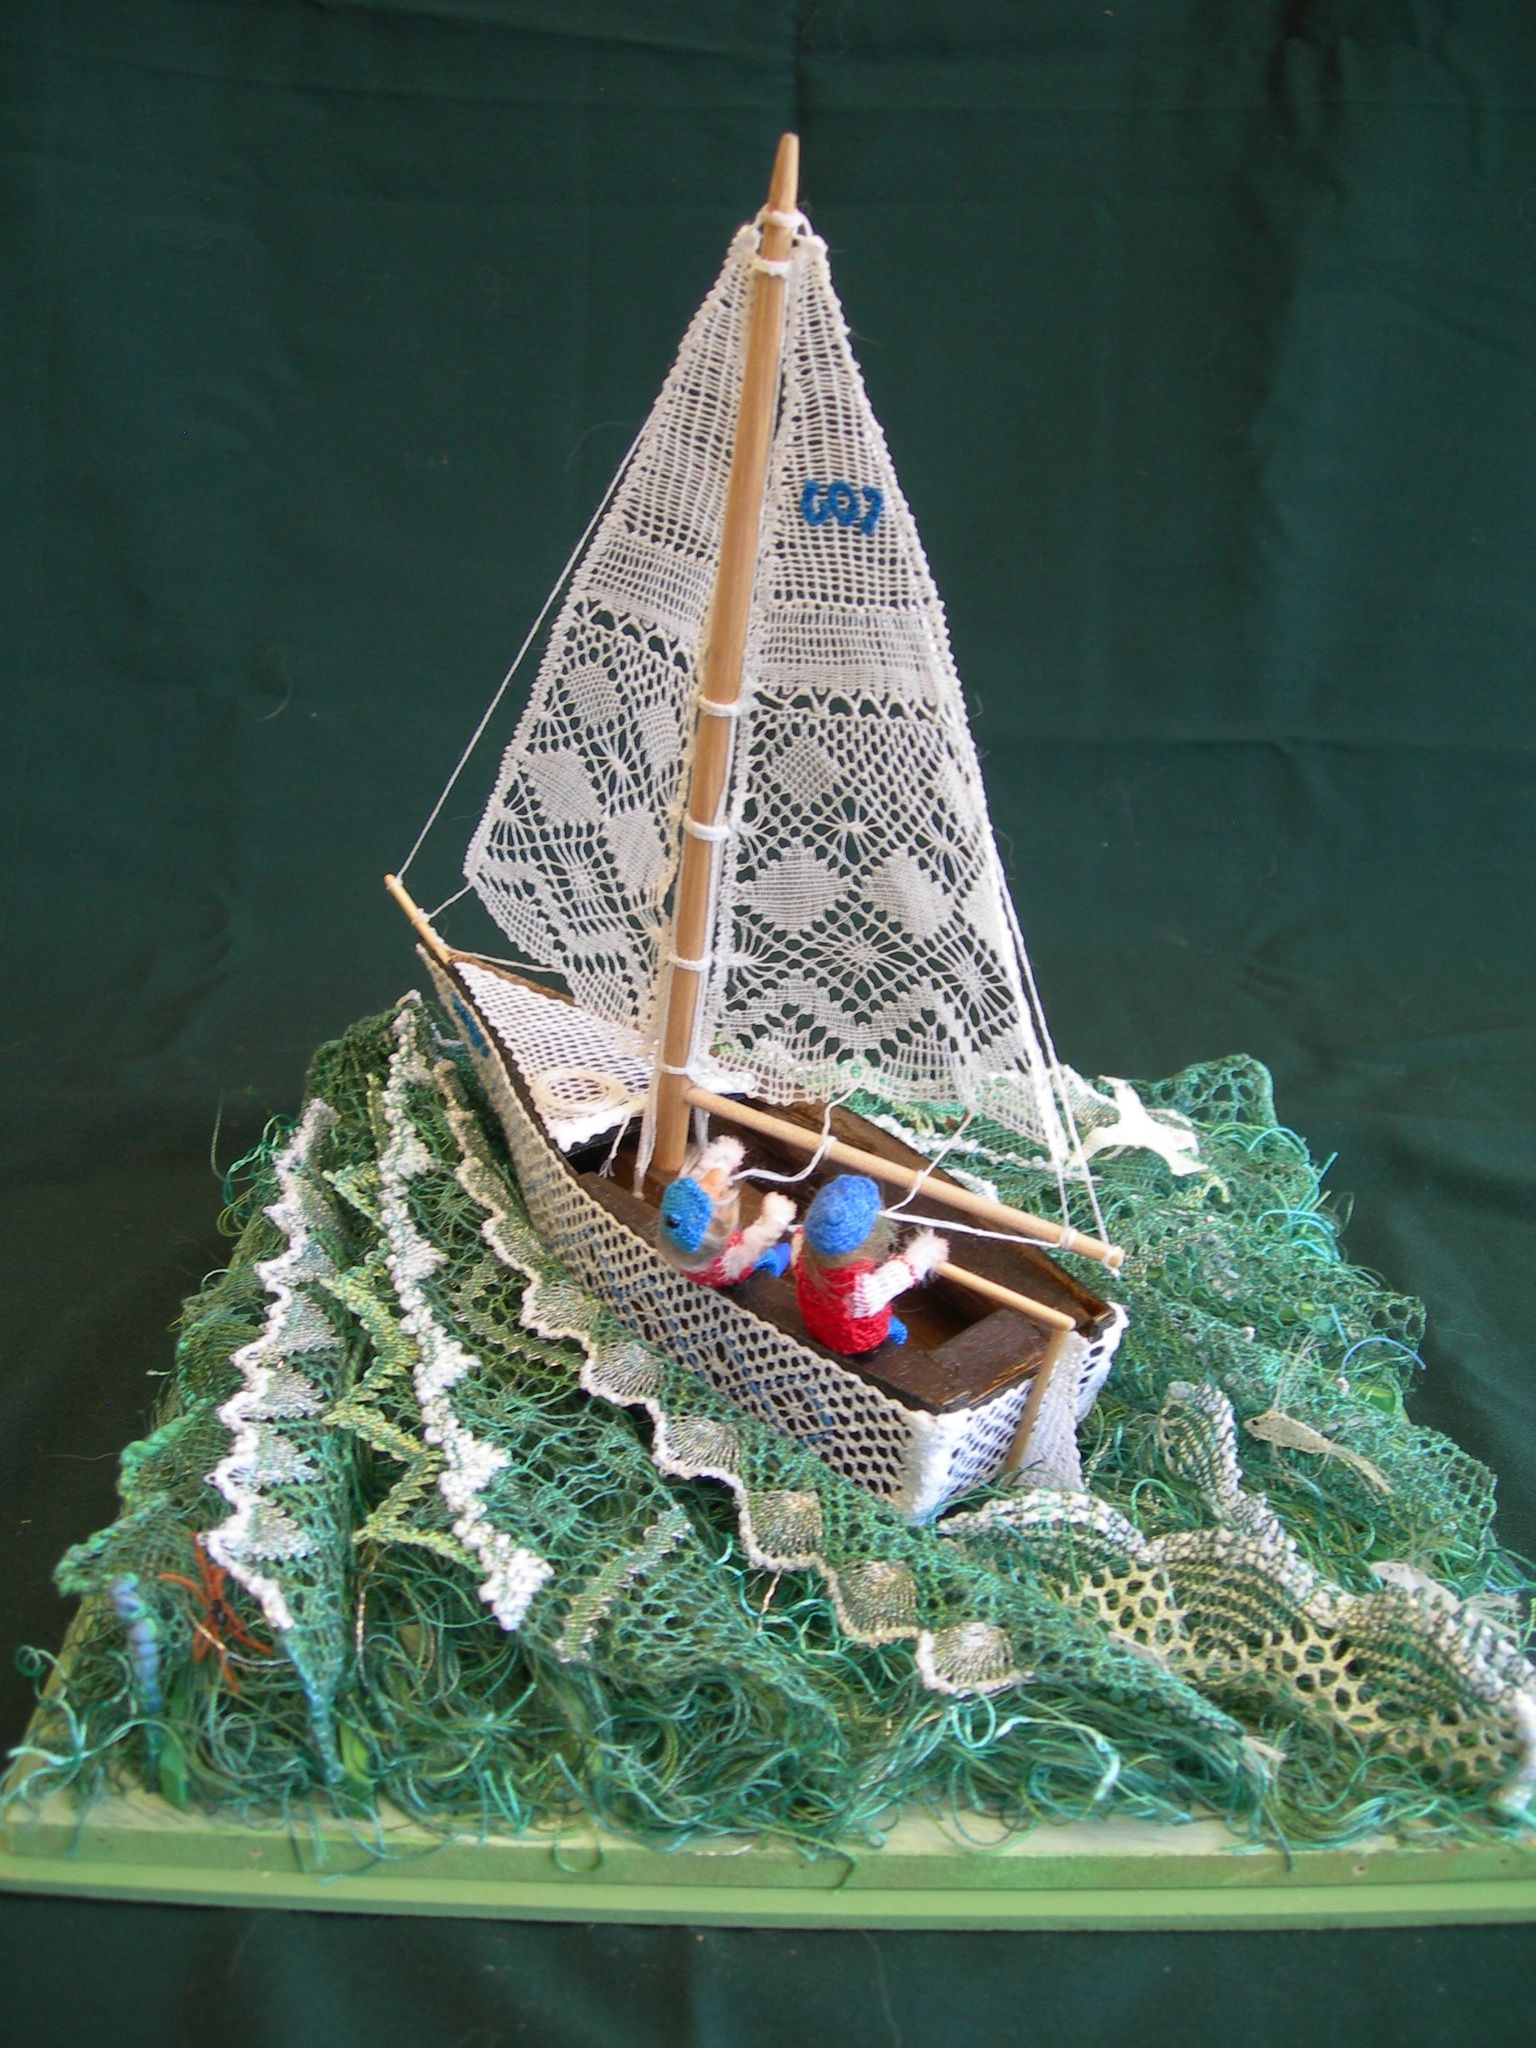 Torchon lace boat ,on torchon  lace waves.